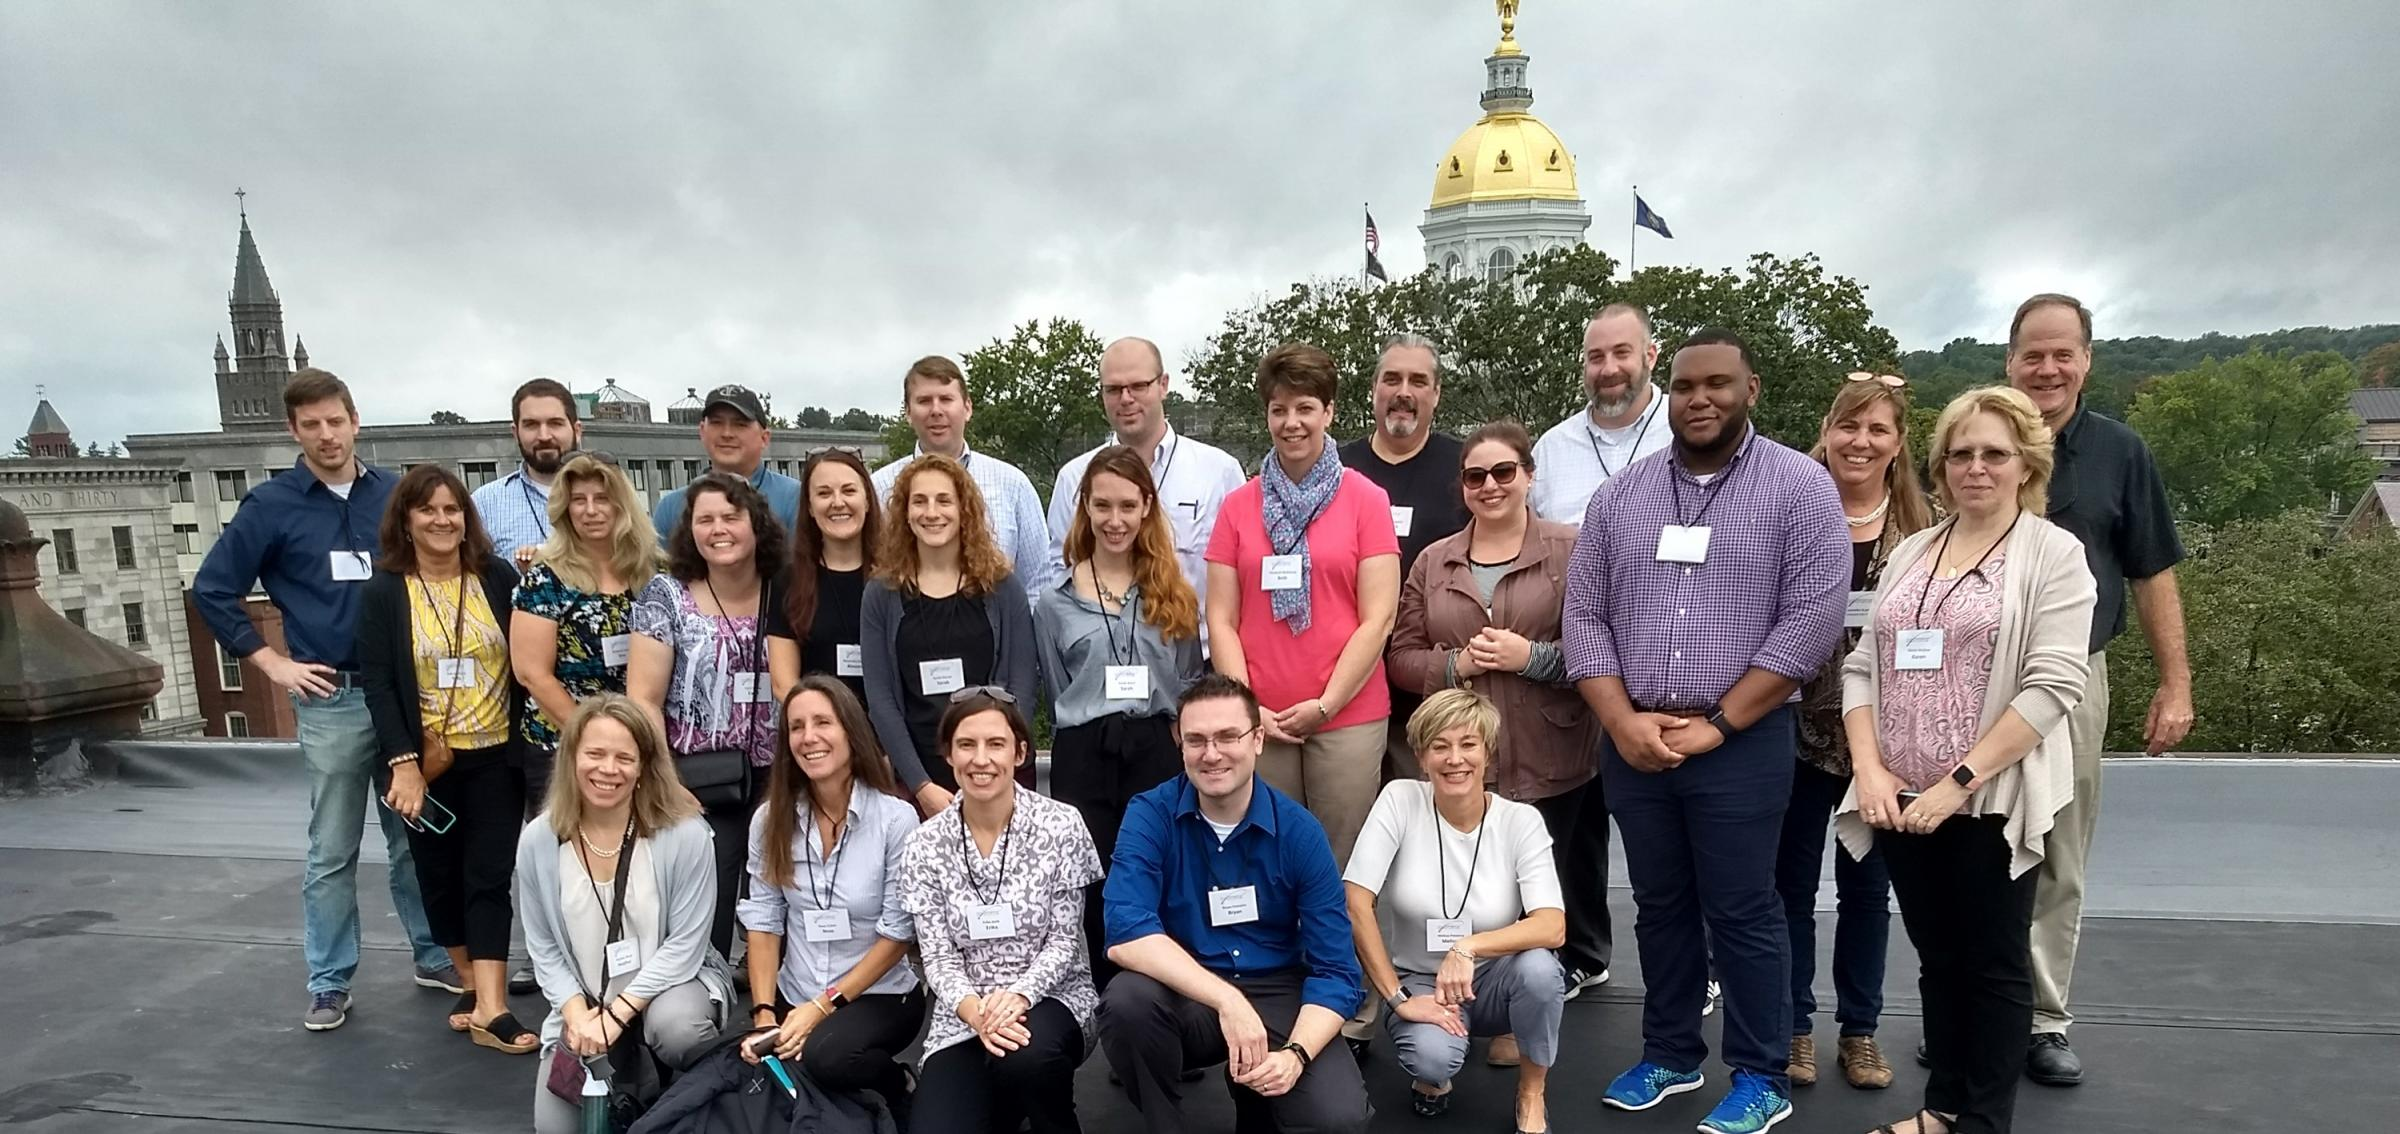 Leadership Greater Concord Class of 2019 poses on the roof of the Sheraton Building with Concord's iconic New Hampshire State House dome visible in the background. Participants spent History and Culture Day getting a historical overview of Concord and its cultural venues and opportunities from Concord City Councilor Jennifer Kretovic and property owner Mark Ciborowski.